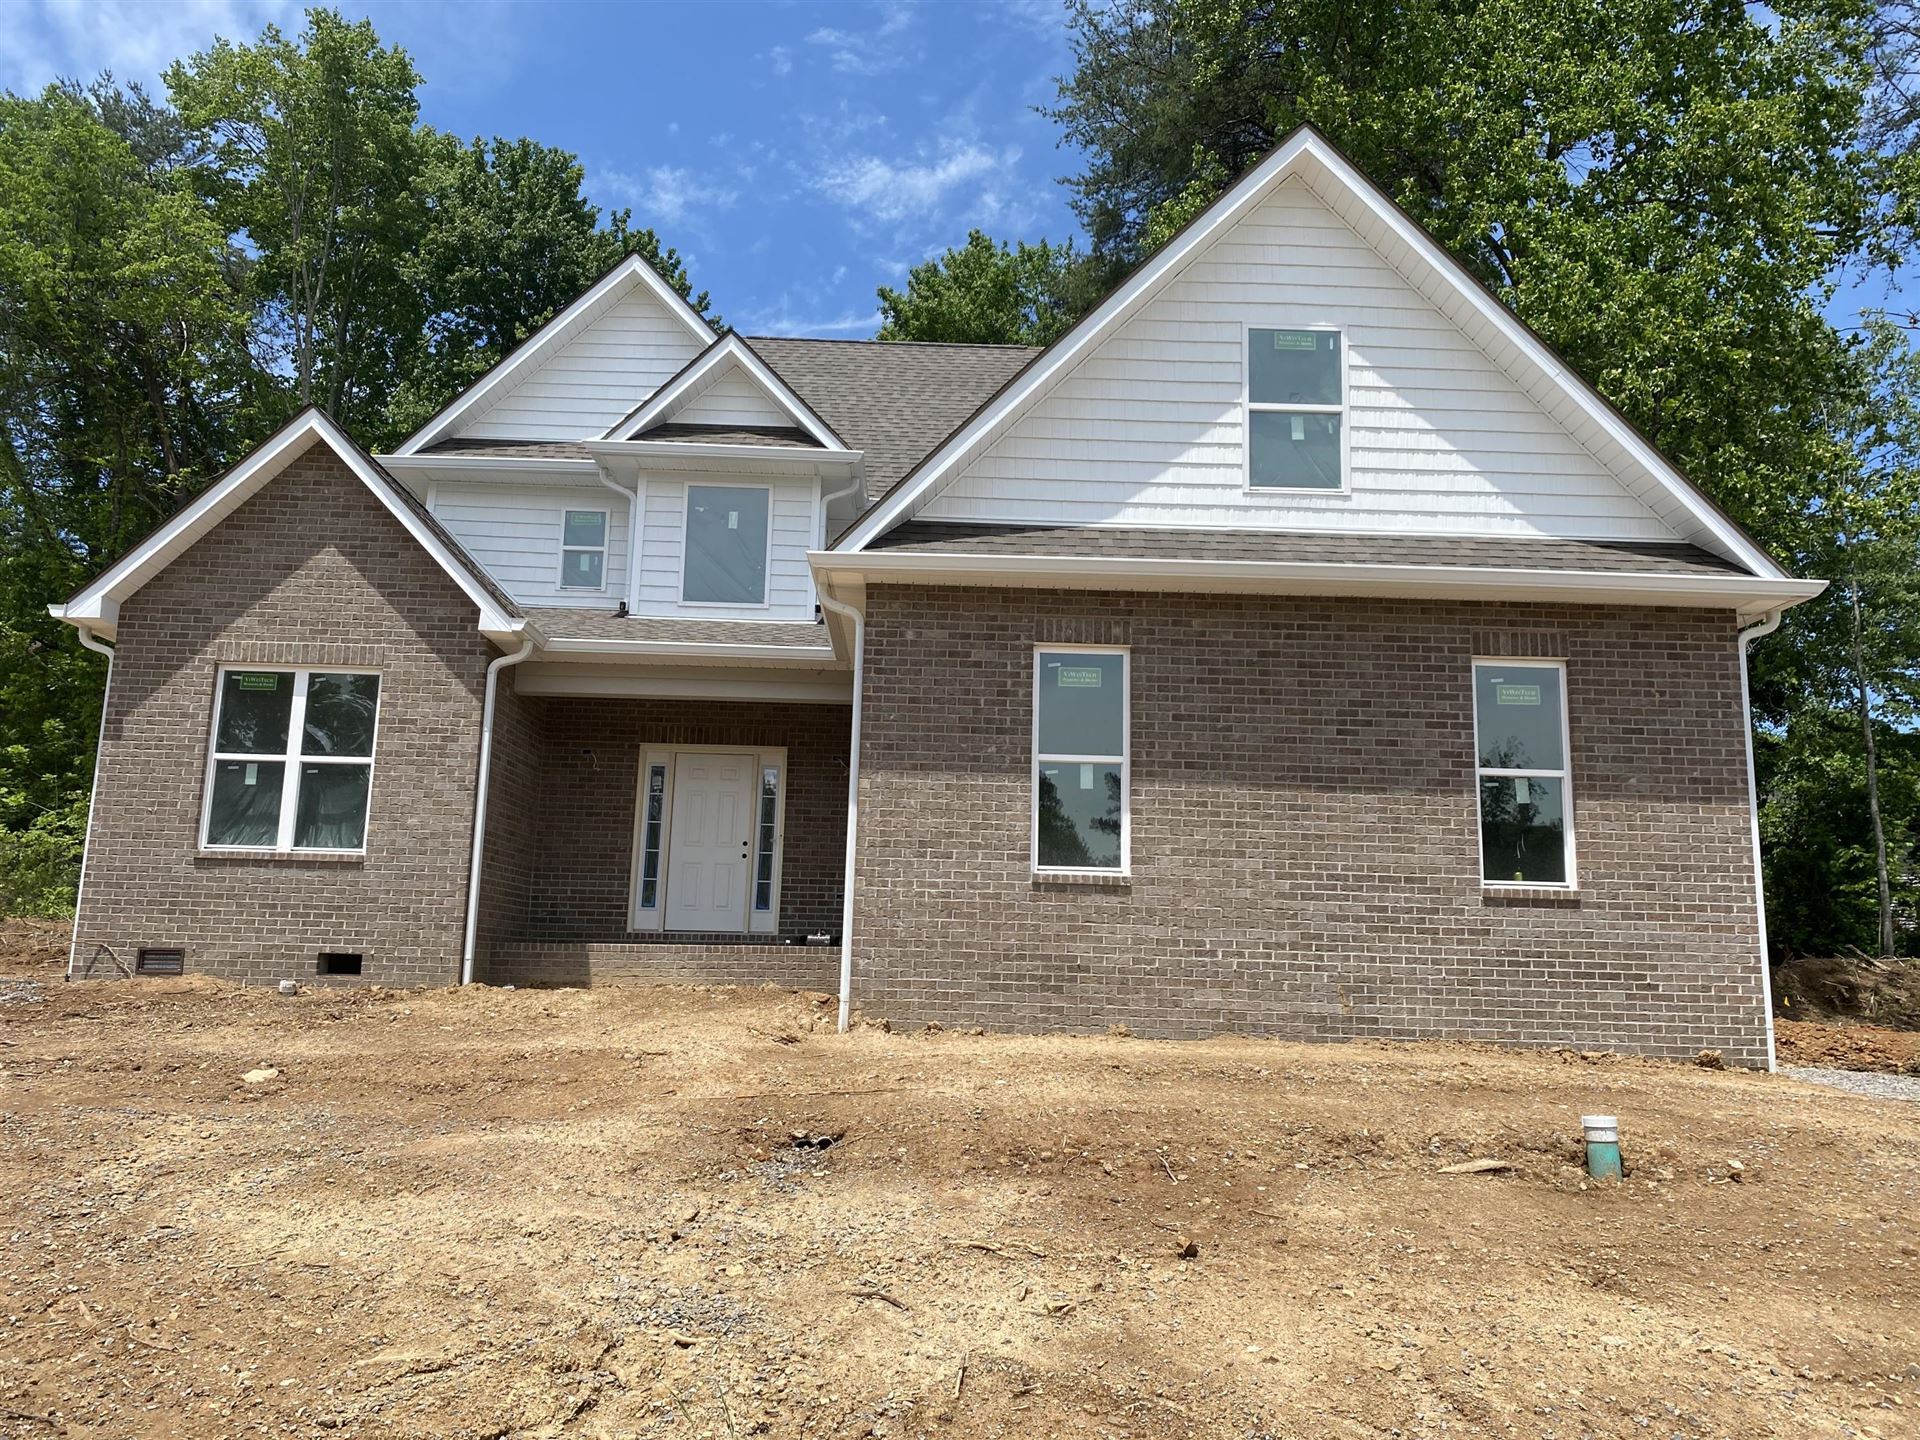 Photo of 107 Crossroads Blvd, Oak Ridge, TN 37830 (MLS # 1152427)